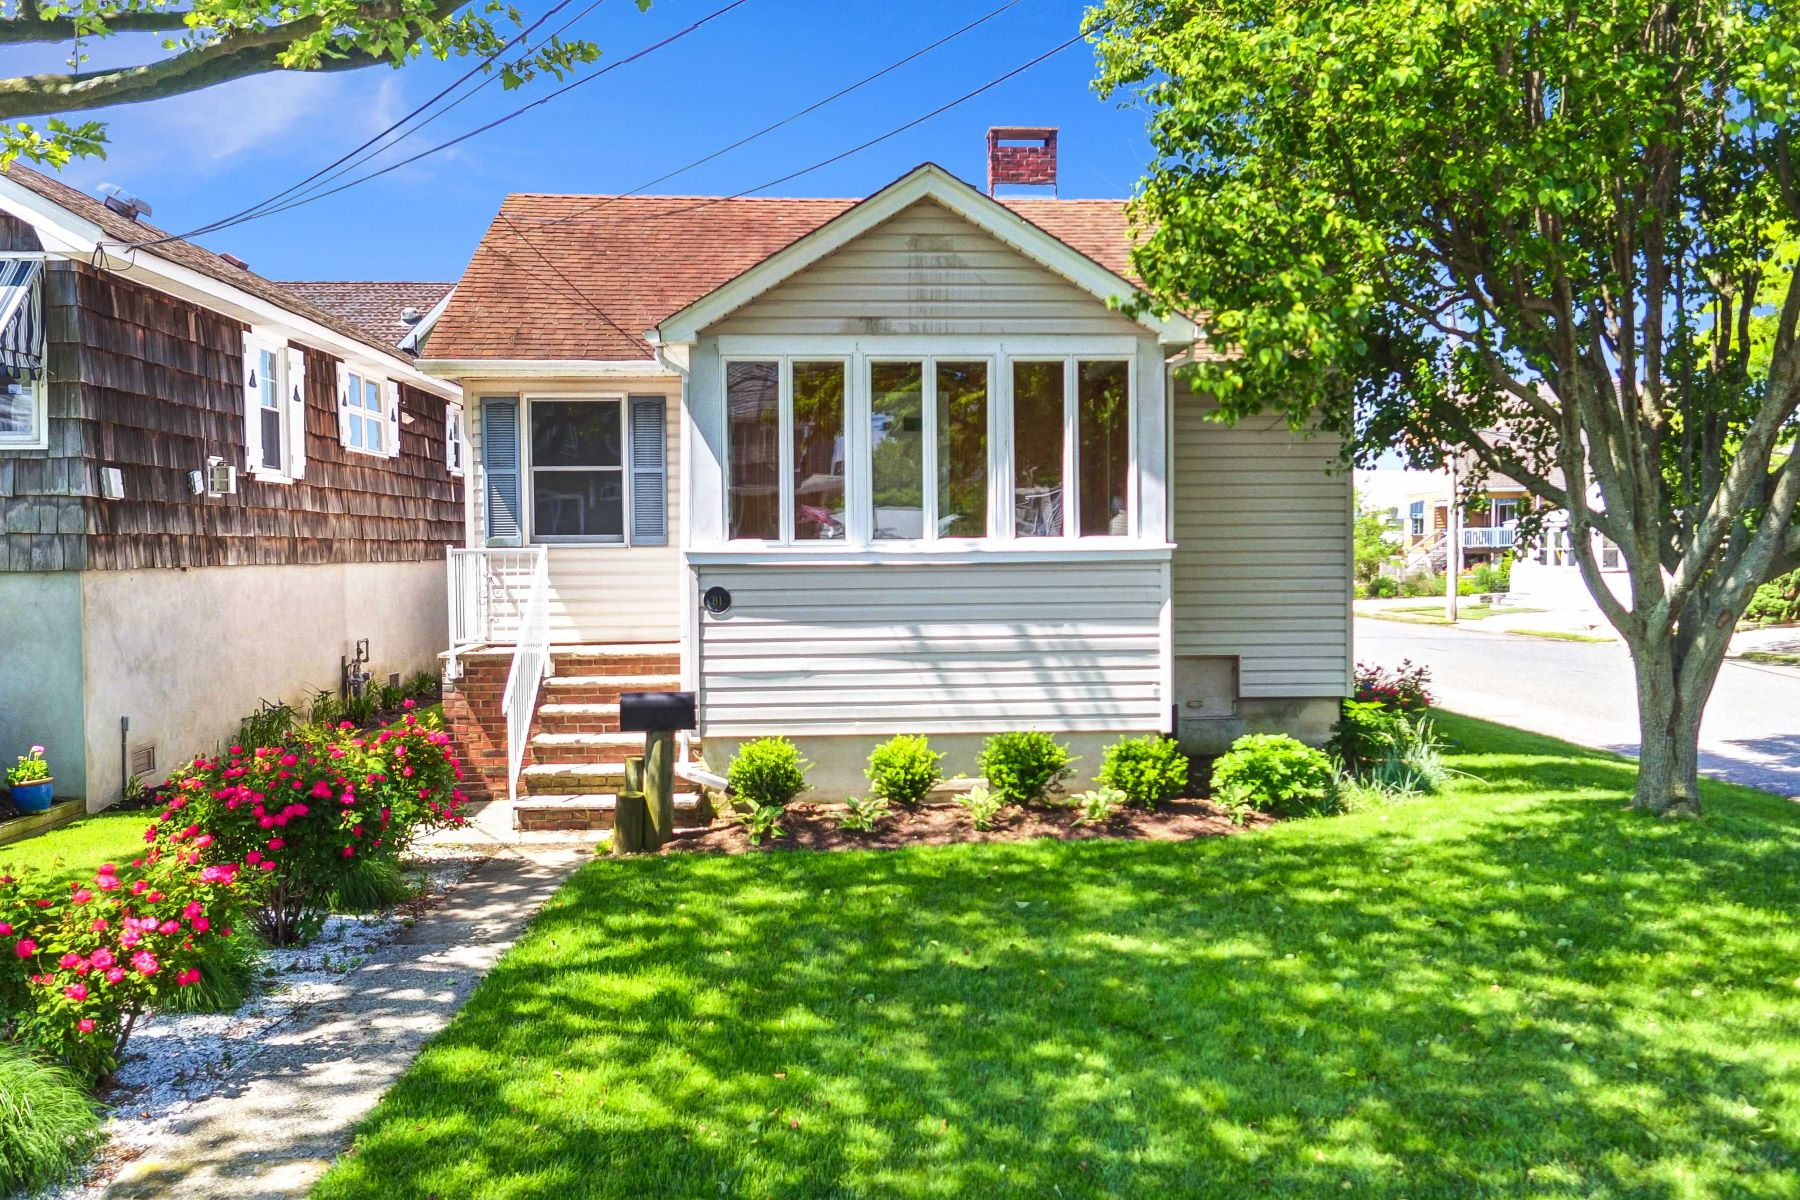 Single Family Home for Sale at Manasquan Beach House 81 Rogers Ave Manasquan, New Jersey, 08736 United States